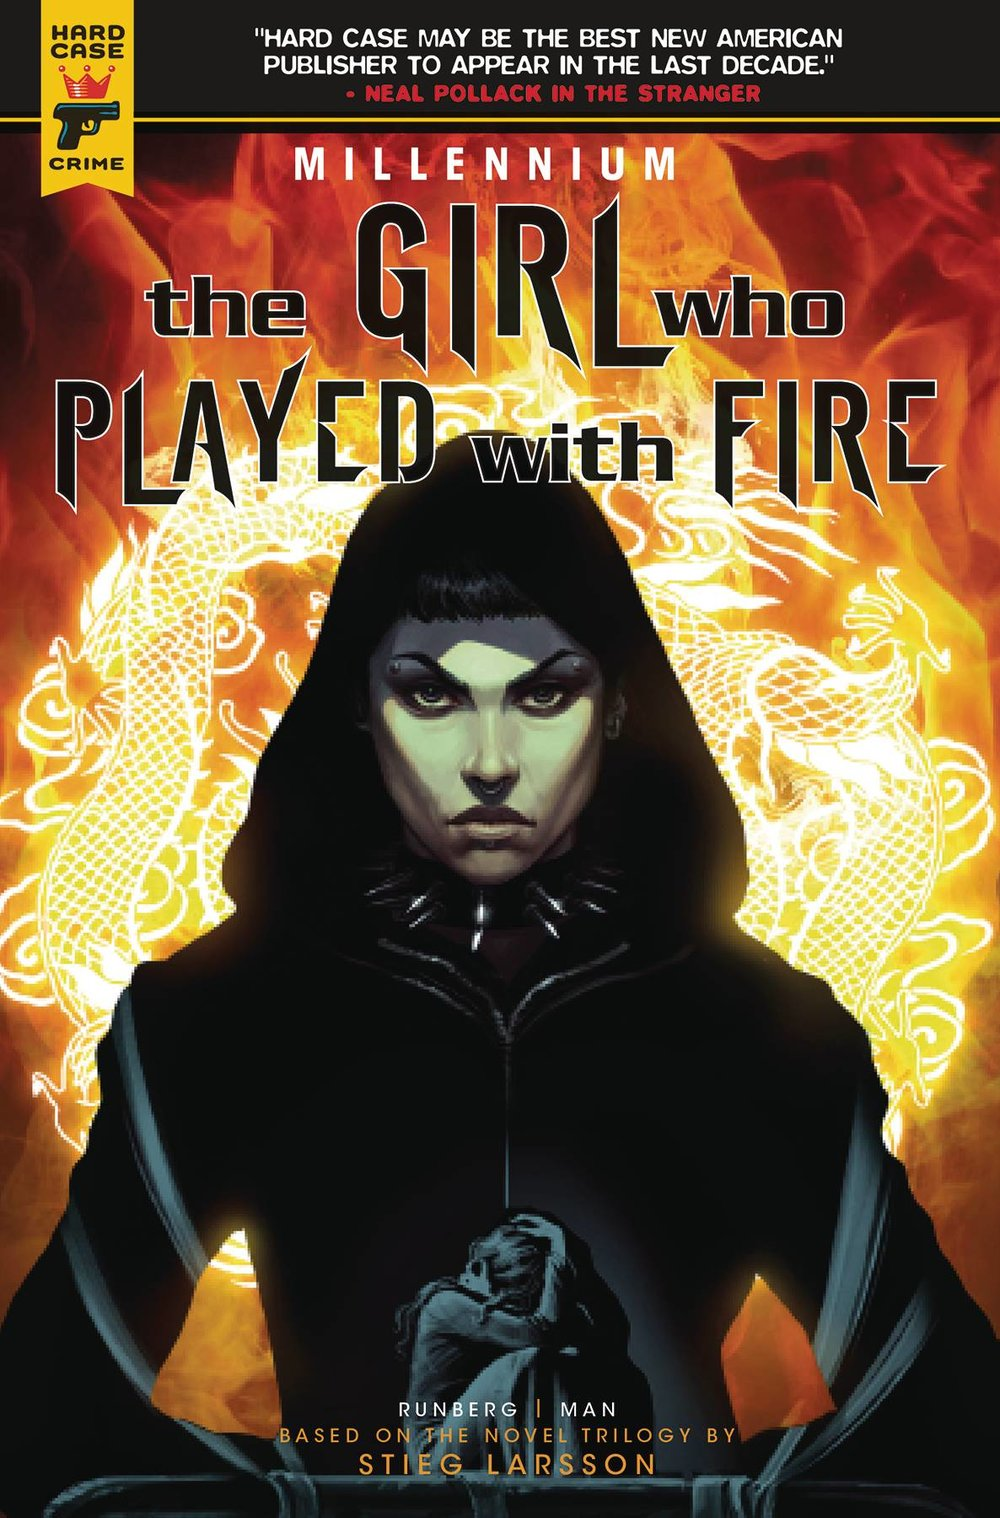 MILLENNIUM GIRL WHO PLAYED WITH FIRE TP.jpg